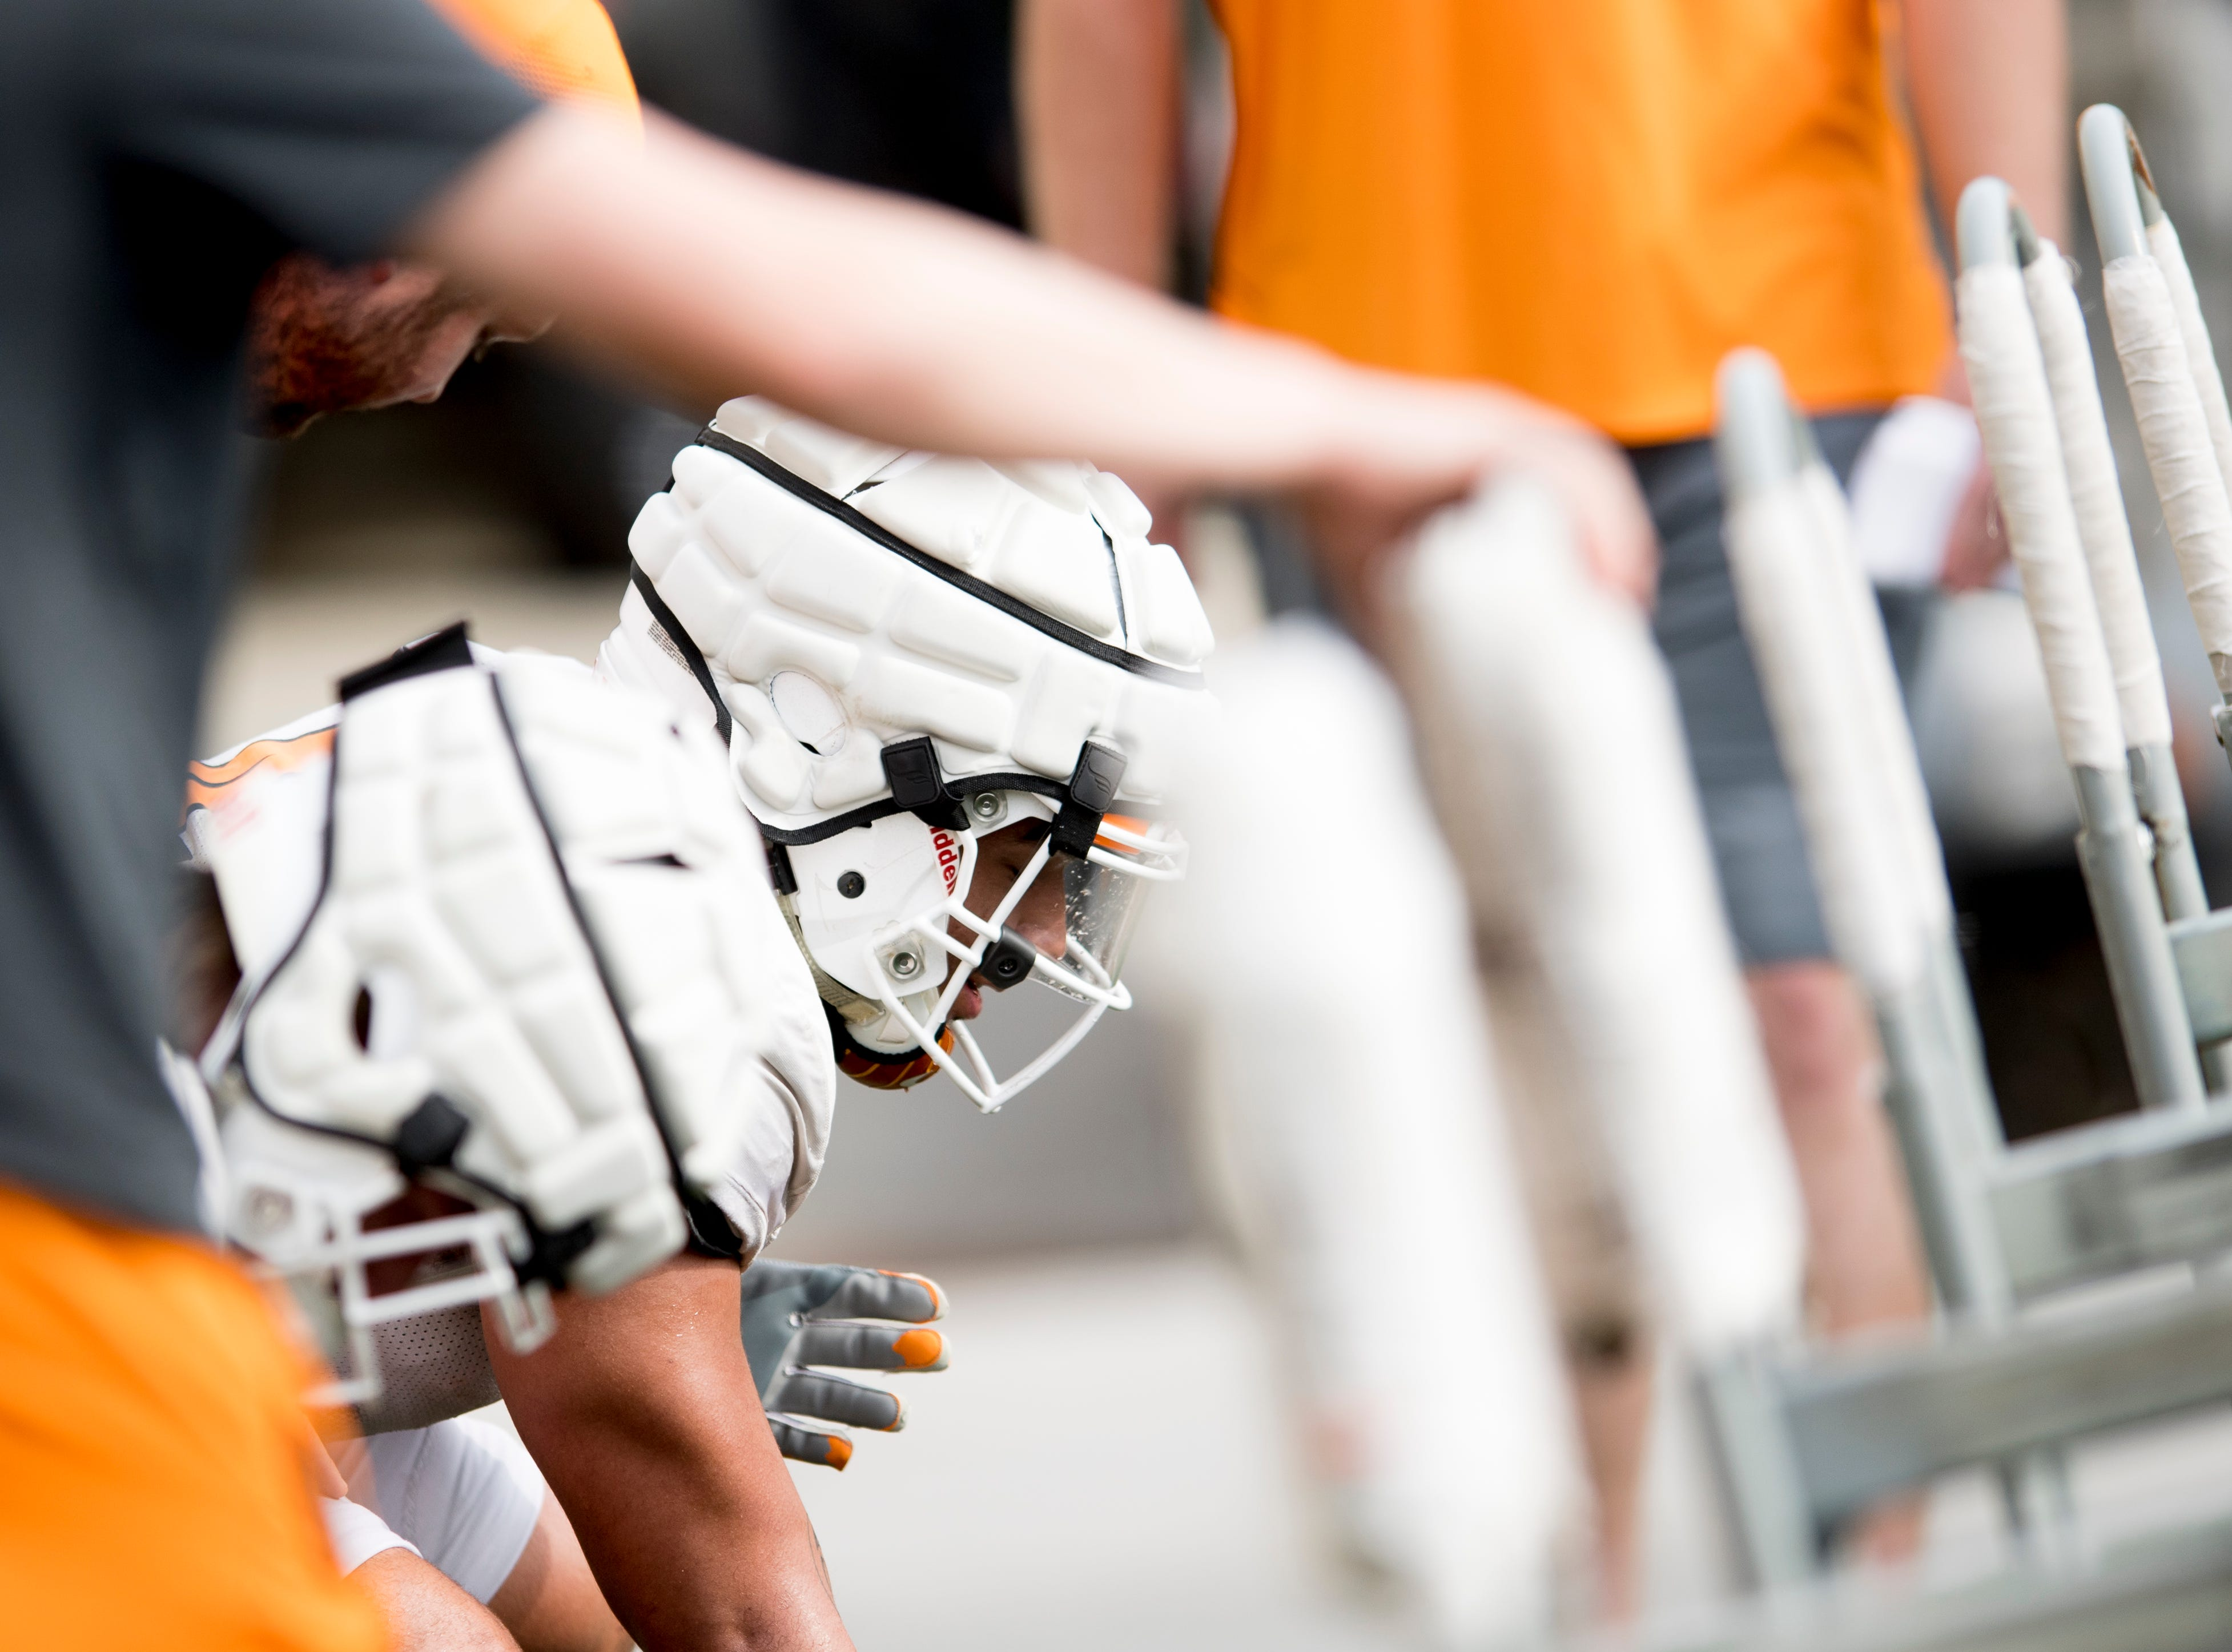 Players drill during Tennessee spring football practice at  Haslam Field in Knoxville, Tennessee on Wednesday, March 13, 2019.